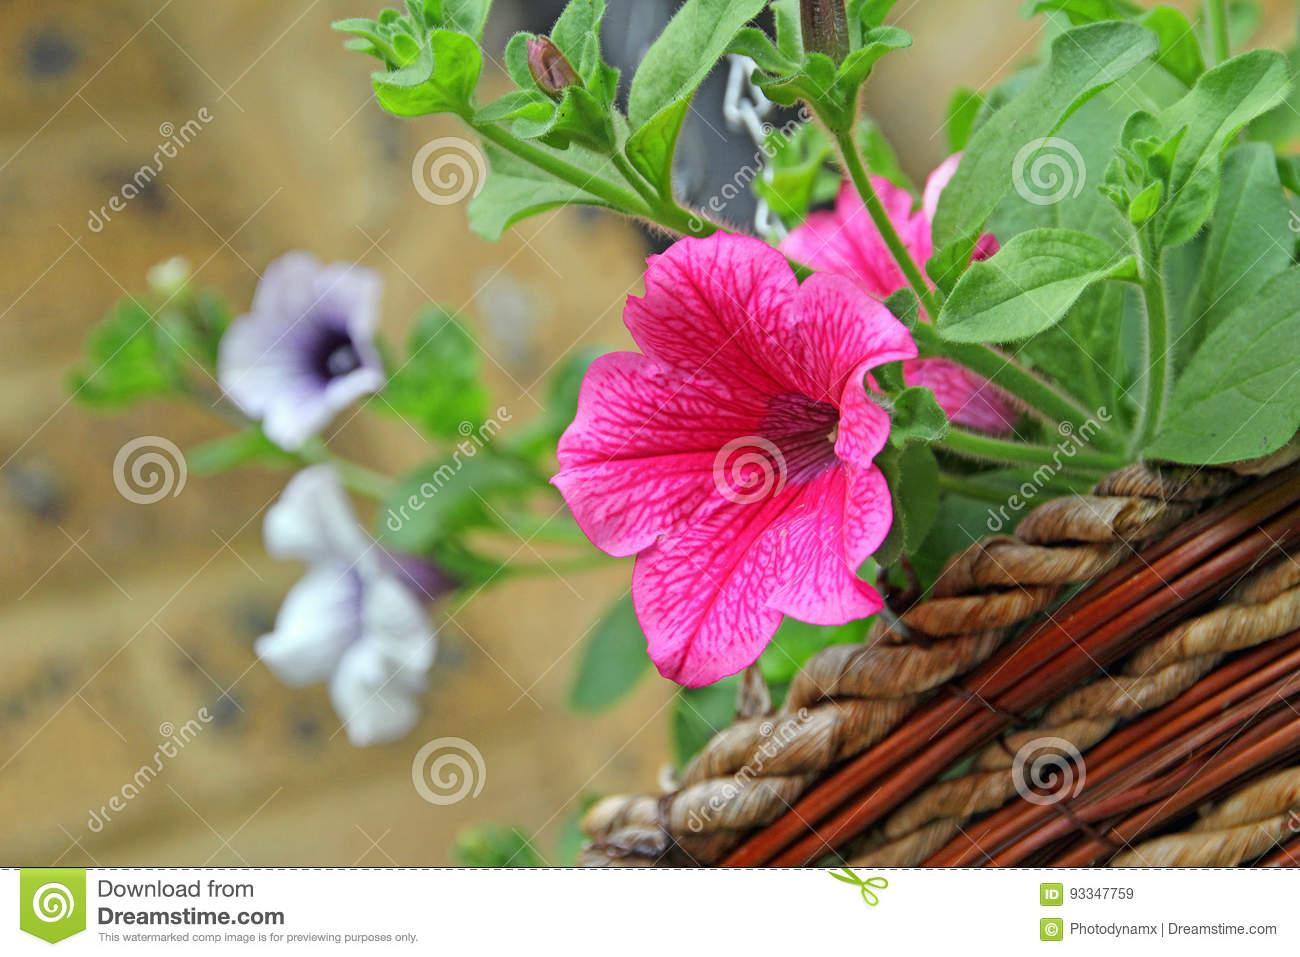 Hanging Basket Flowers Stock Image Image Of Grow Photo 93347759